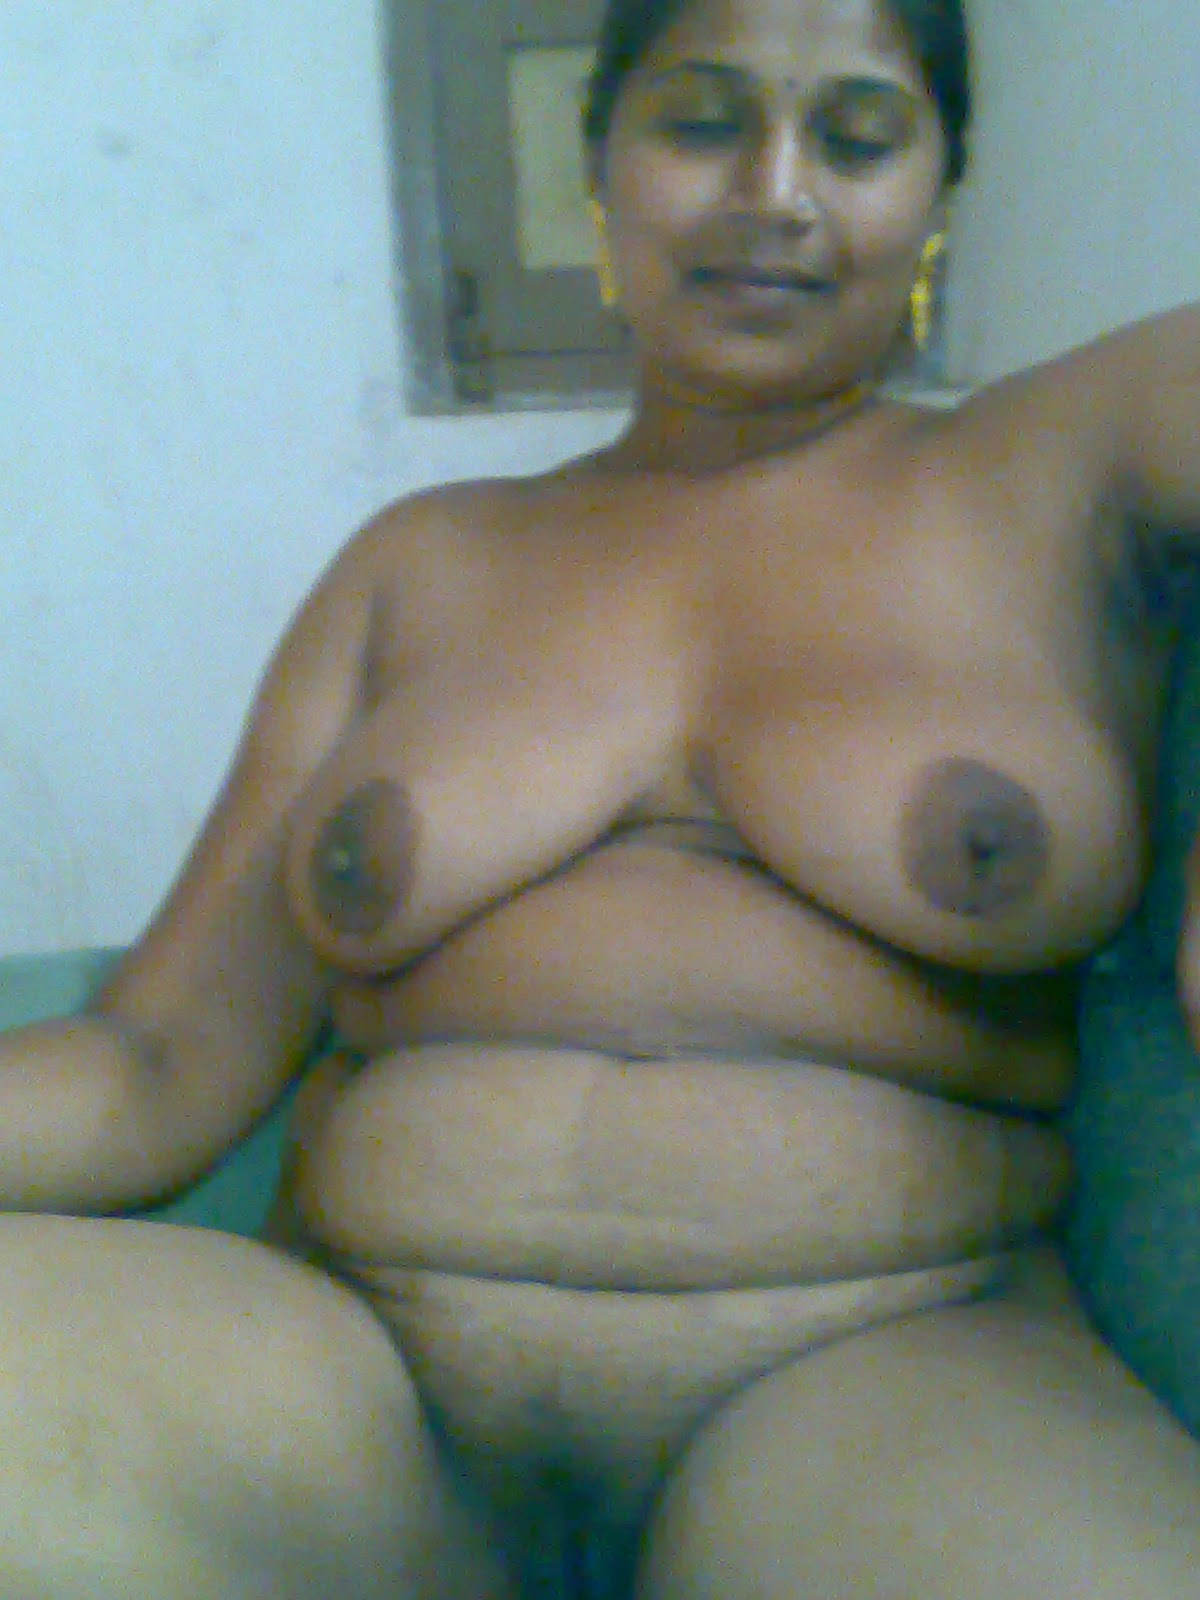 Kerala aunty nude pussy images